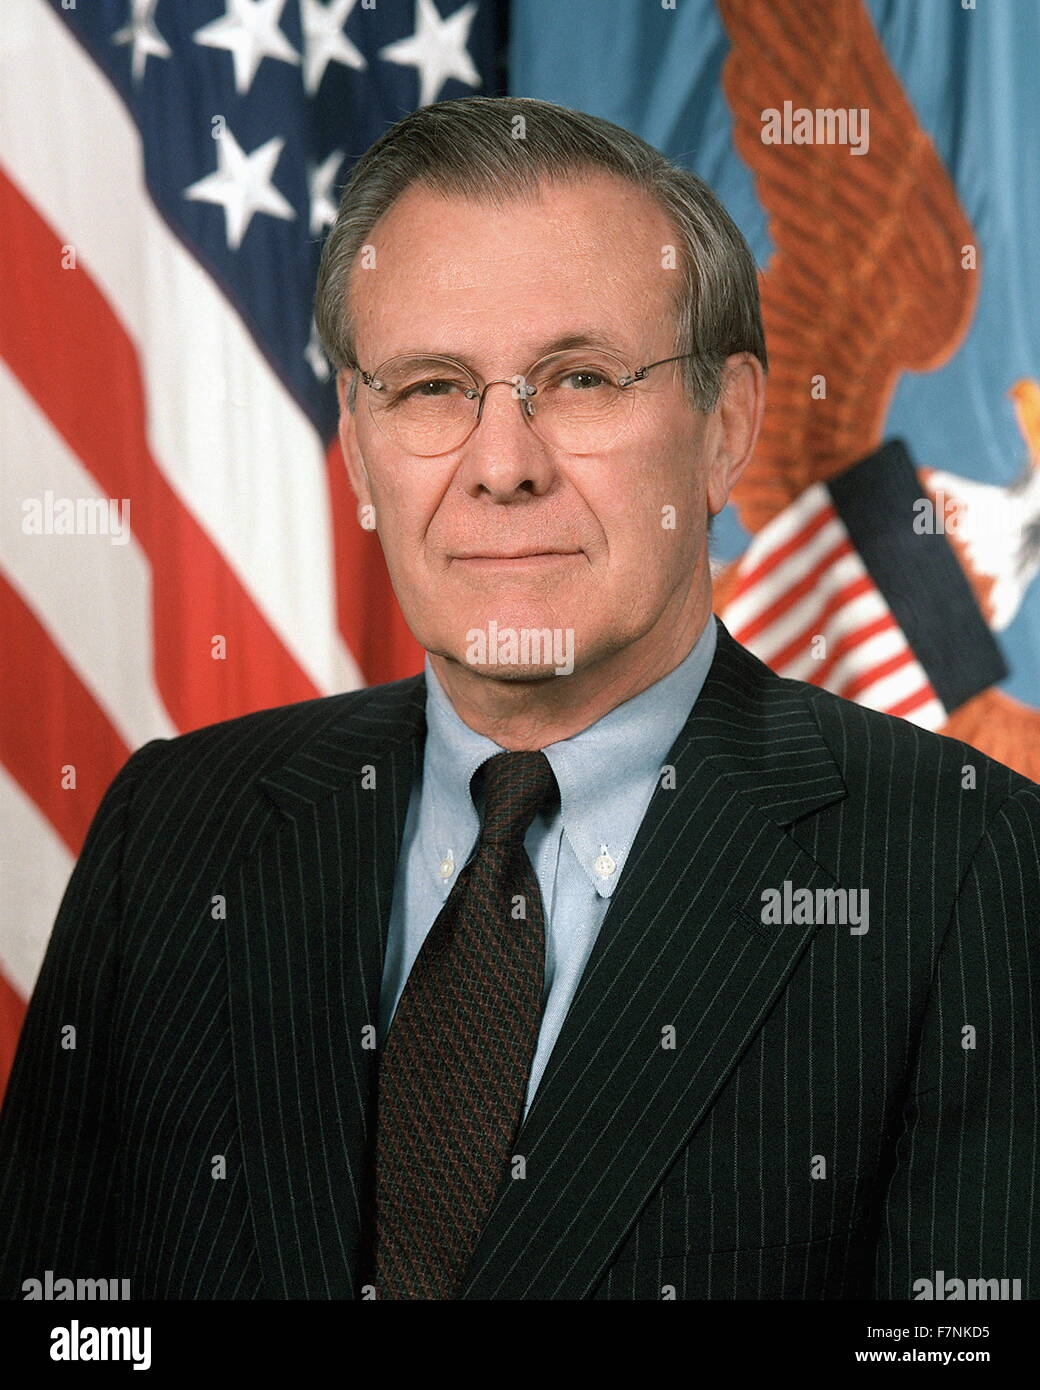 Donald Rumsfeld (born July 9, 1932) American politician and businessman. Secretary of Defense from 1975 to 1977 - Stock Image